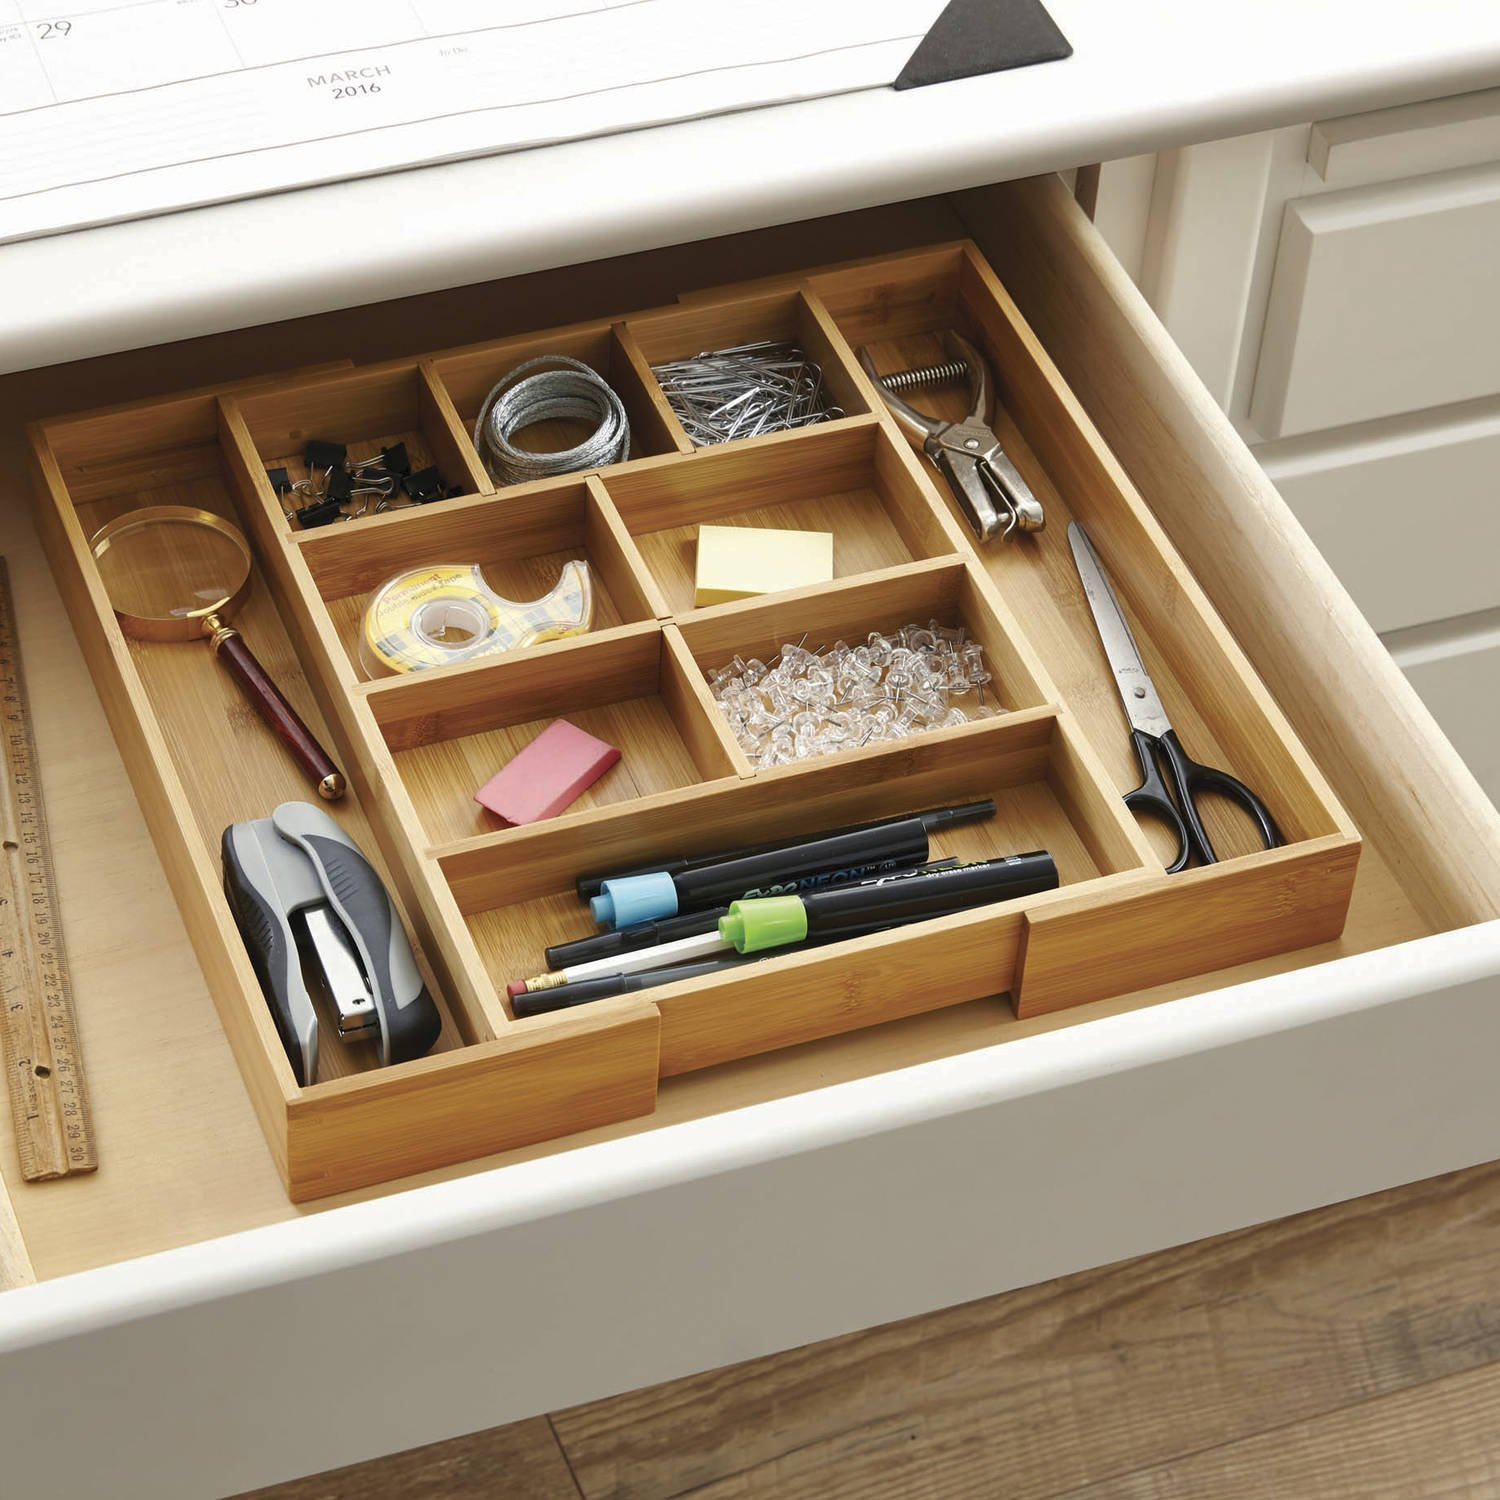 cutlery tray MSL Details